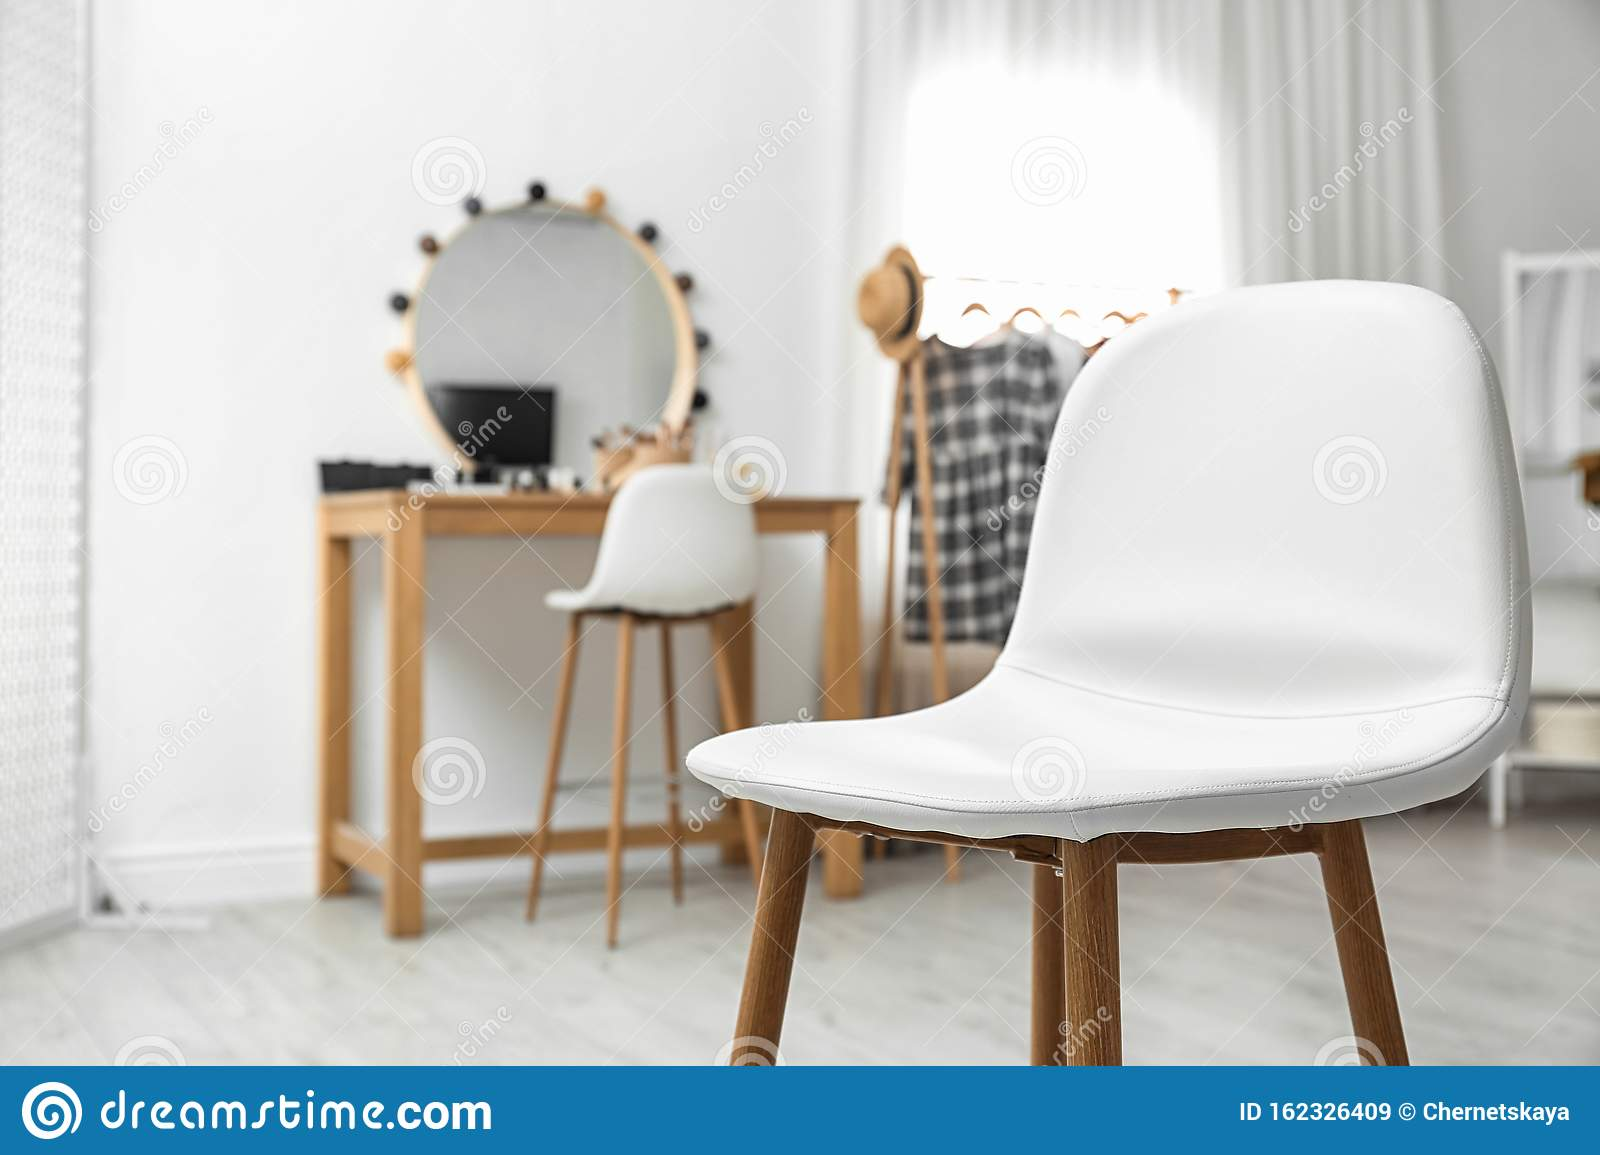 Stylish White Chair In Makeup Room Interior Stock Image - Image of